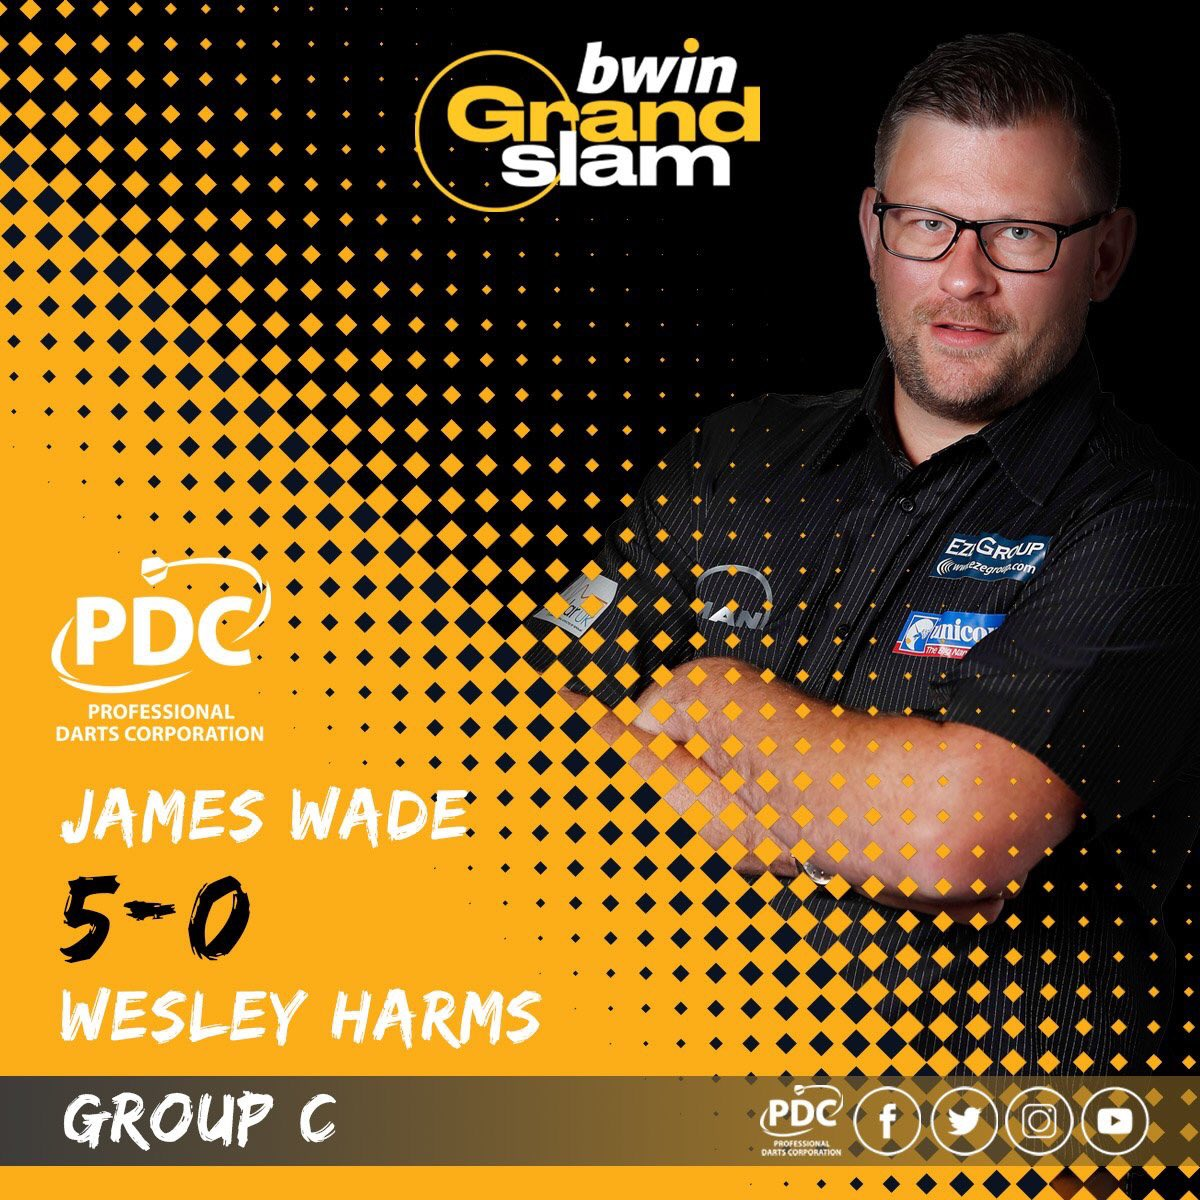 Thanks for all the support everyone 🎯👊🏼 #TeamWade